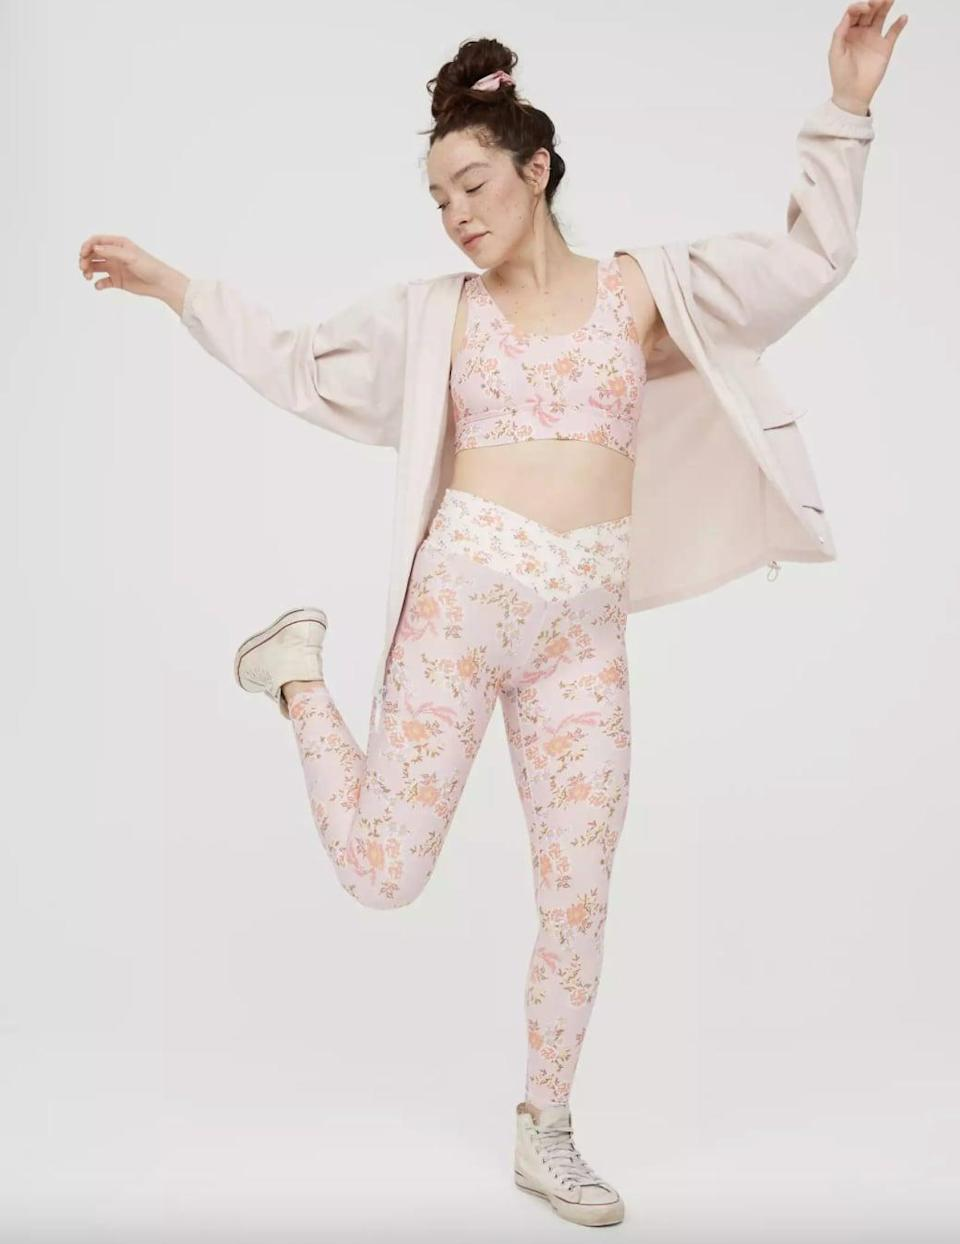 <p>I've been seeing these <span>Aerie OFFLINE Real Me High-Waisted Floral Crossover Leggings</span> ($27, originally $45) all over TikTok, and now I think I need them too. The mixed print is worthy of an Instaqram snap.</p>